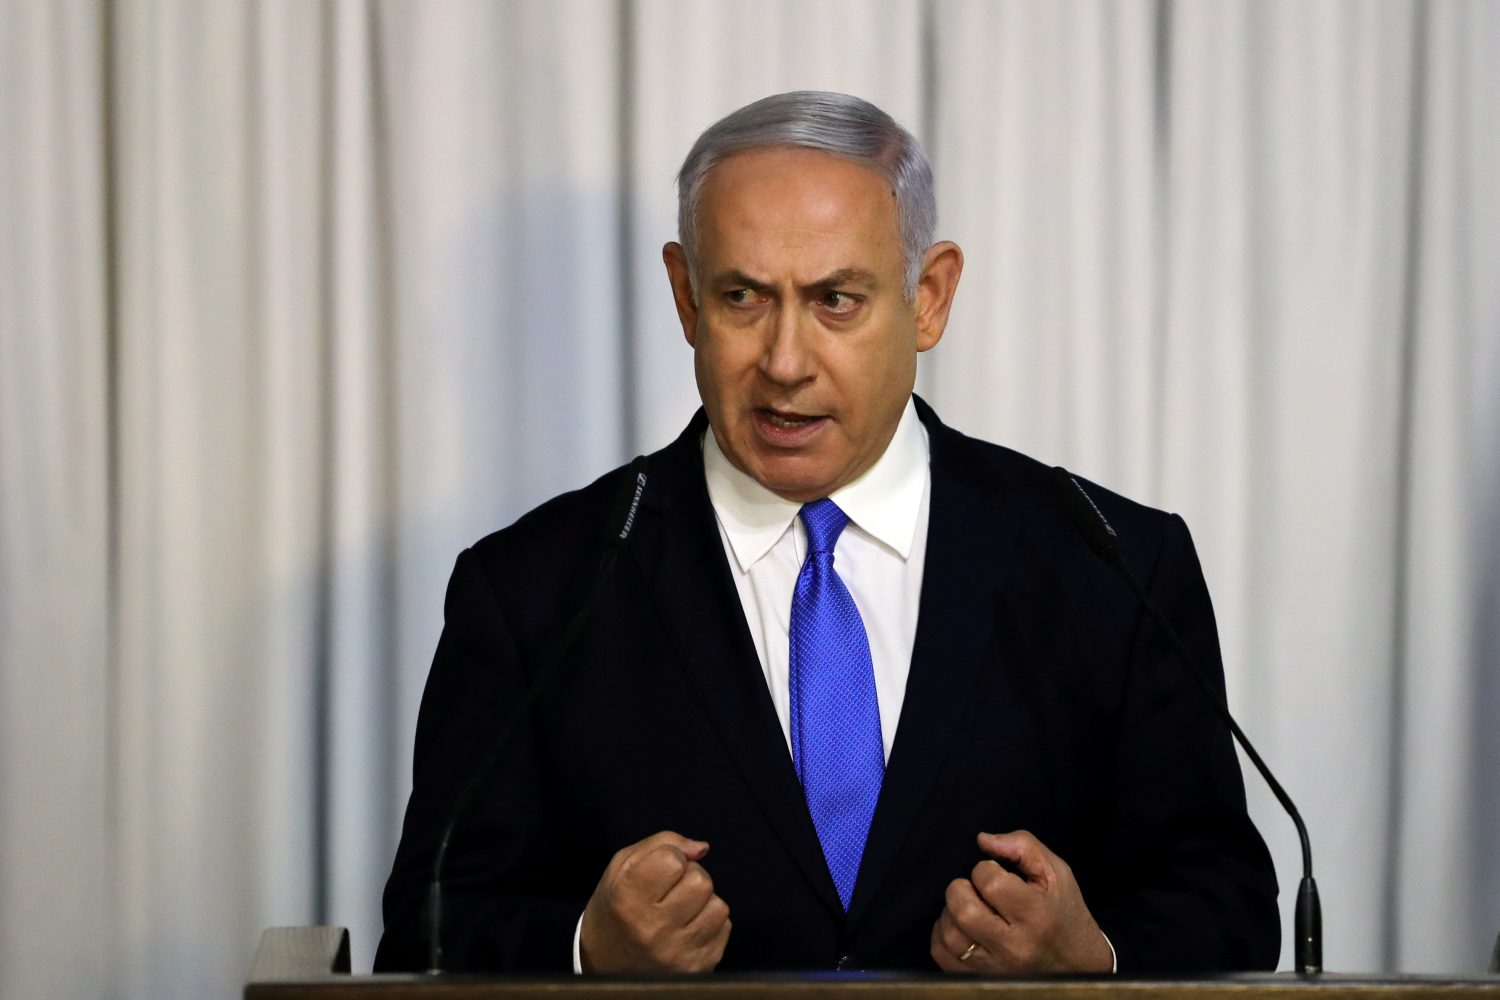 FILE PHOTO: Israeli Prime Minister Benjamin Netanyahu gives a statement to the media in Tel Aviv, Israel February 21, 2019 REUTERS/ Ammar Awad/File Photo